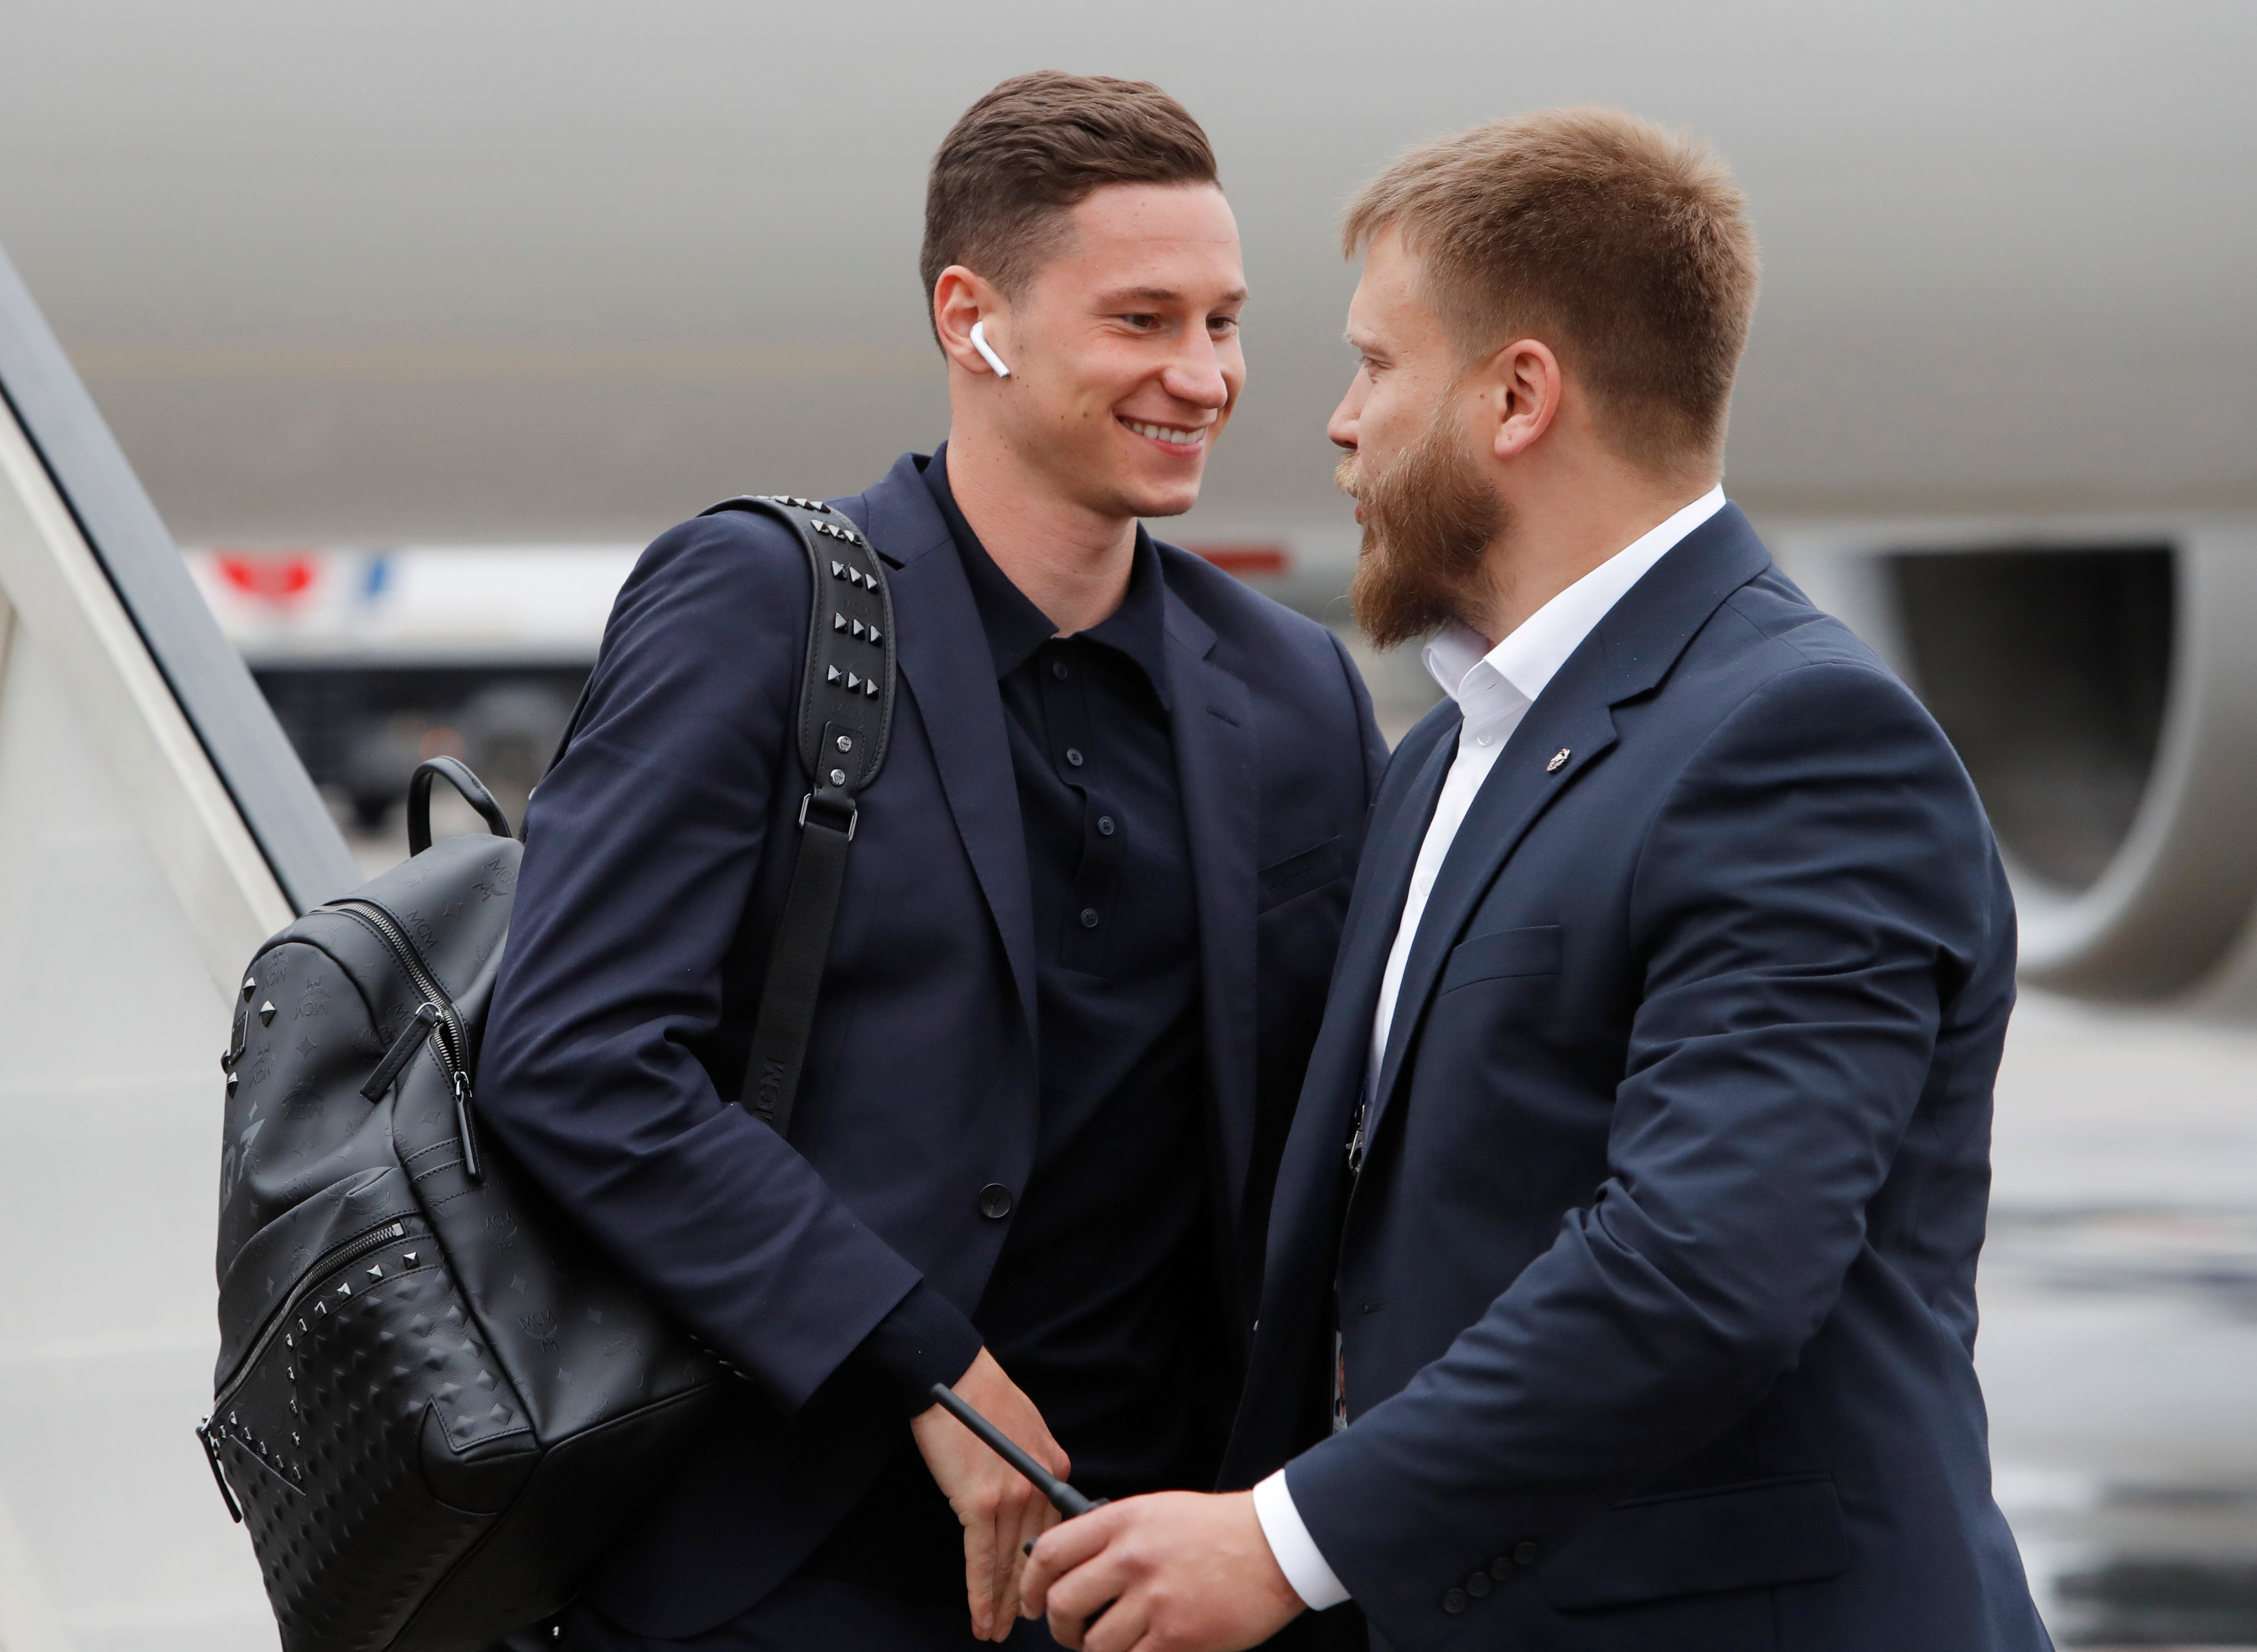 Soccer Football - World Cup - Germany Arrival - Vnukovo International Airport, Moscow, Russia - June 12, 2018 Germany's Julian Draxler as they arrive in Moscow REUTERS/Sergei Karpukhin - RC15CA059720